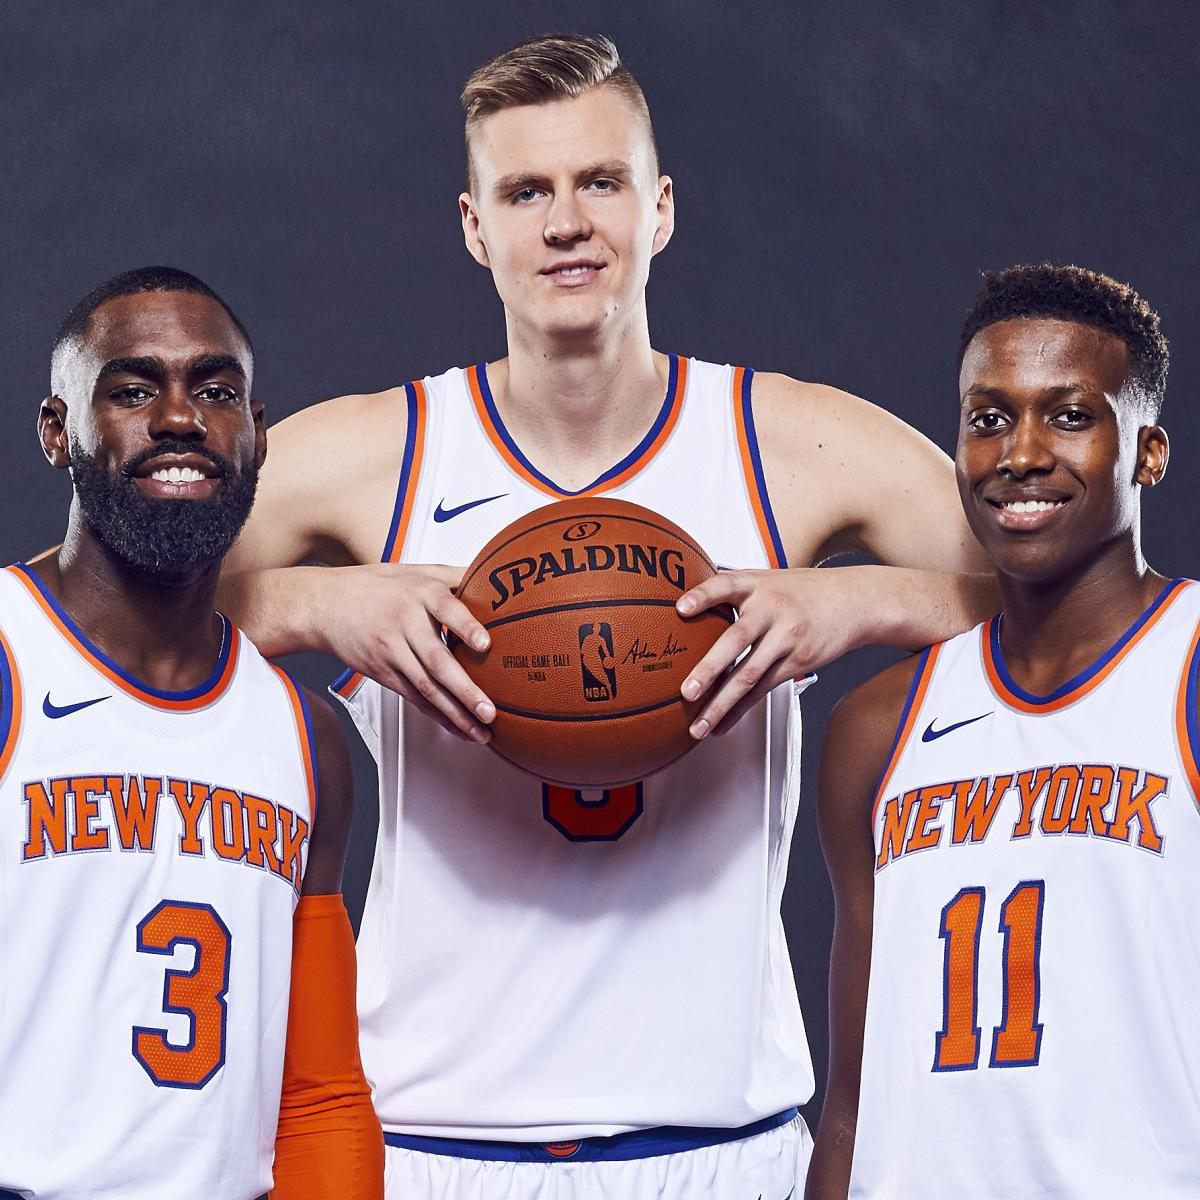 New Cover S Alert The 2017 18 Nba Rookies: 5 Realistic Goals New York Knicks Should Set For 2017-18